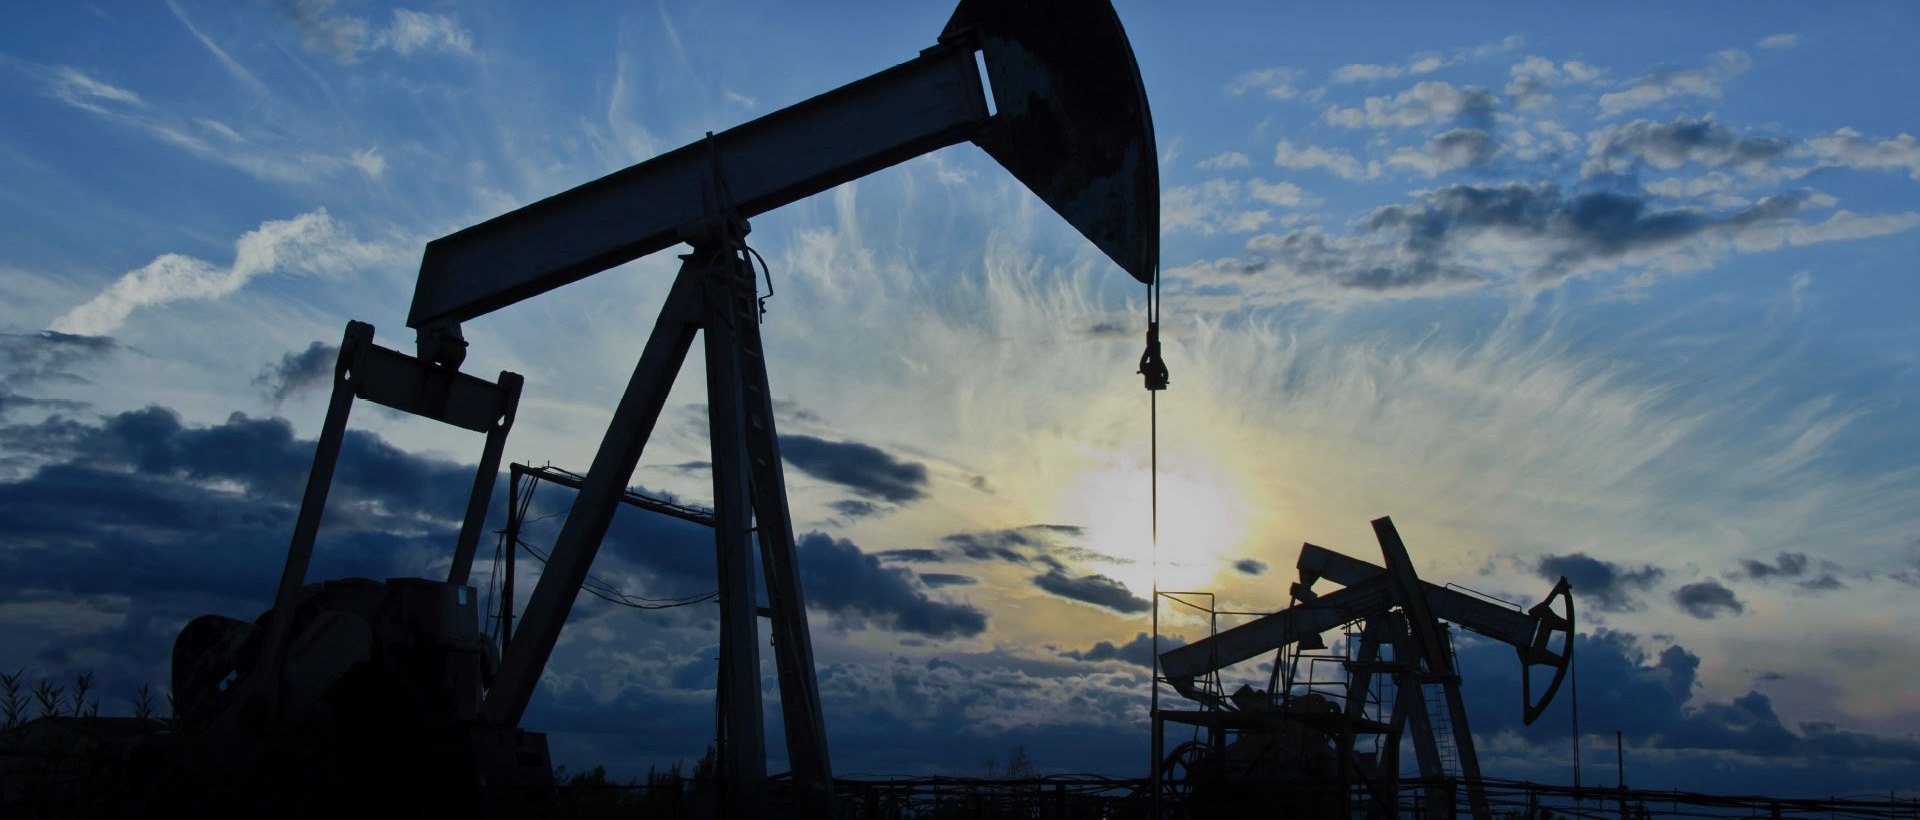 A Third Dimension in Oil Production